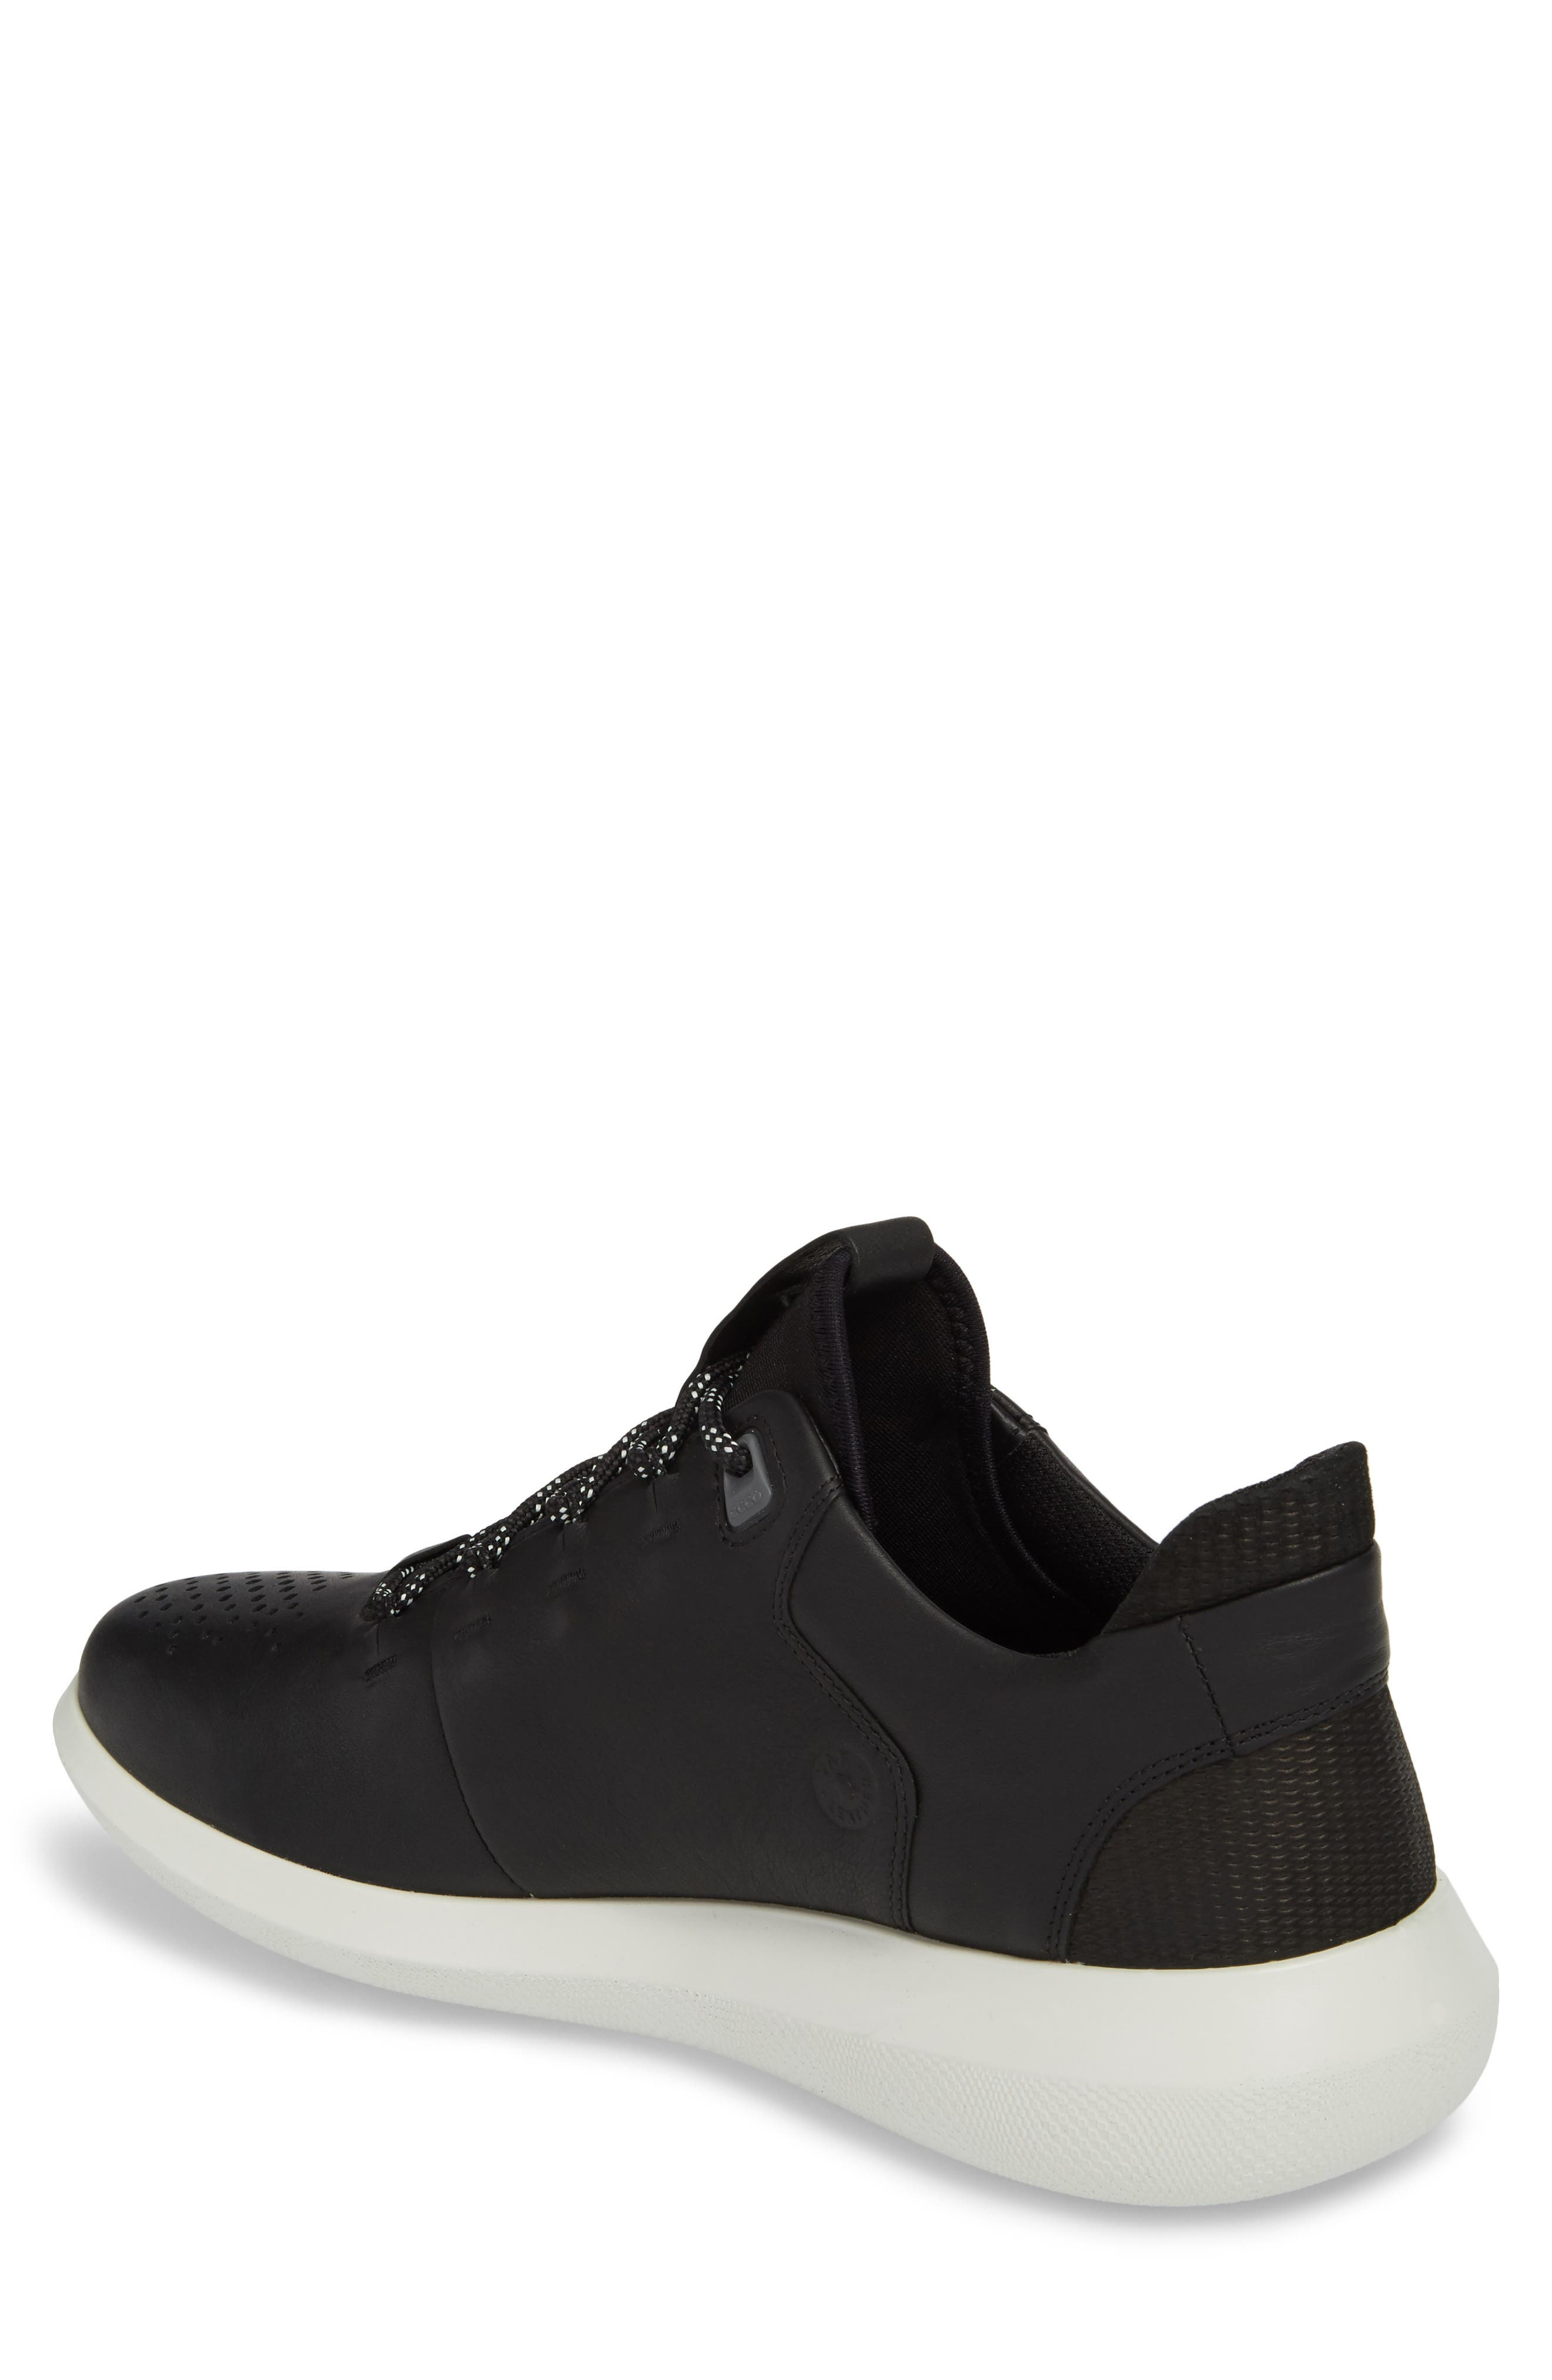 Scinapse Sneaker,                             Alternate thumbnail 2, color,                             BLACK LEATHER